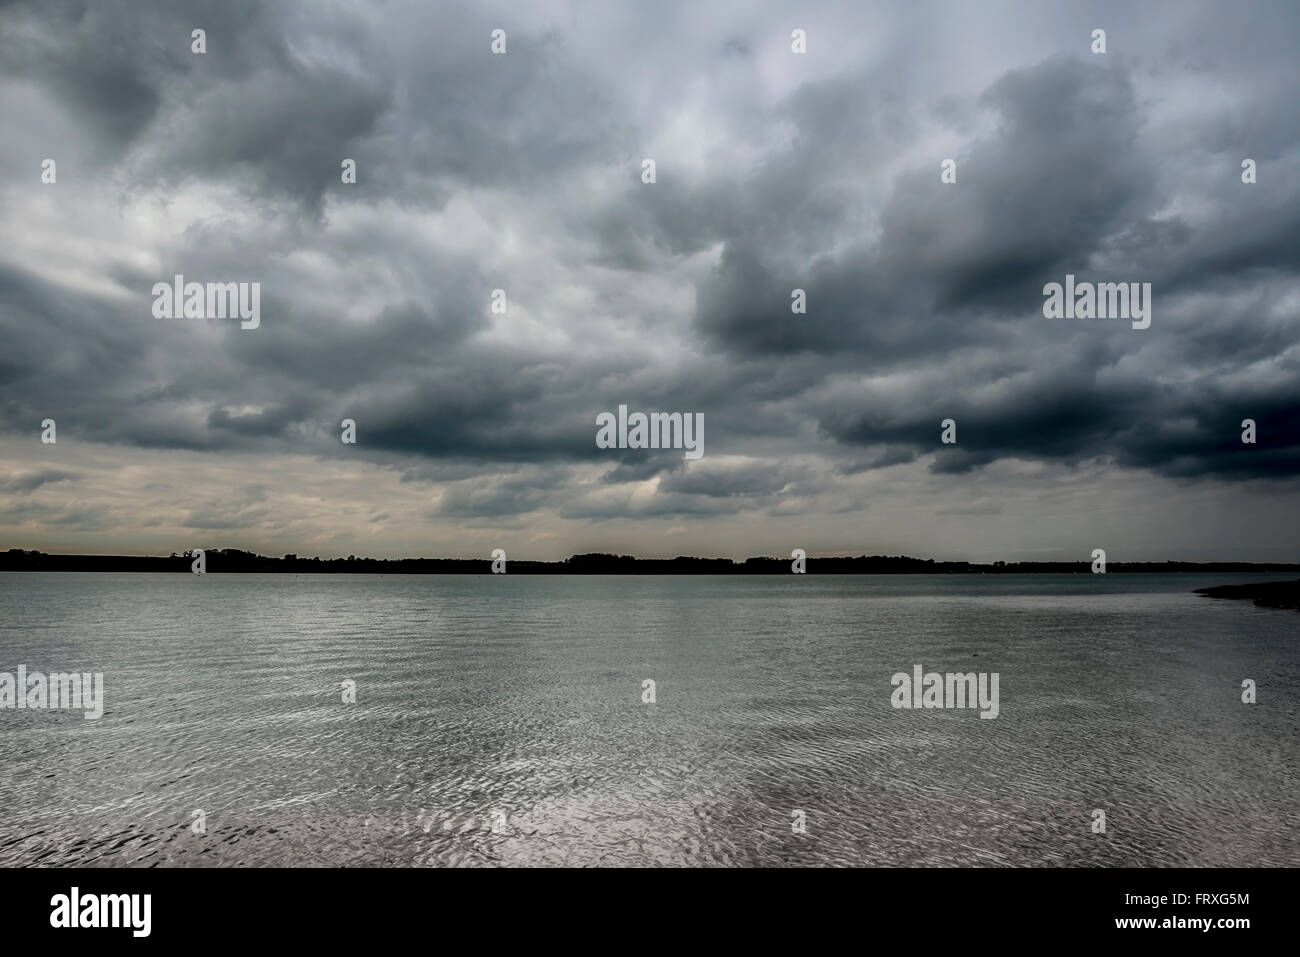 Highly reflective water on a cloudy morning - Stock Image